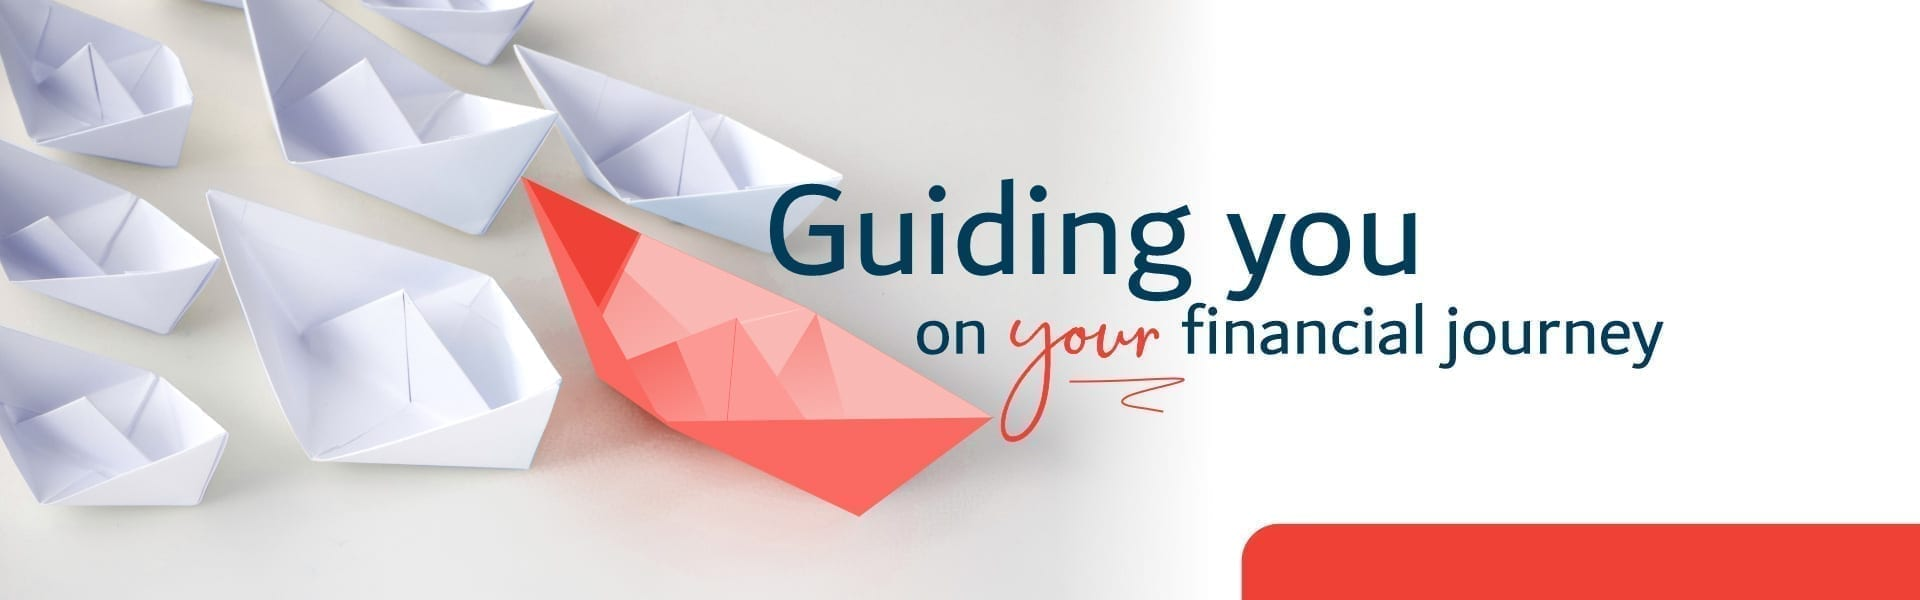 Guiding you on your financial journey